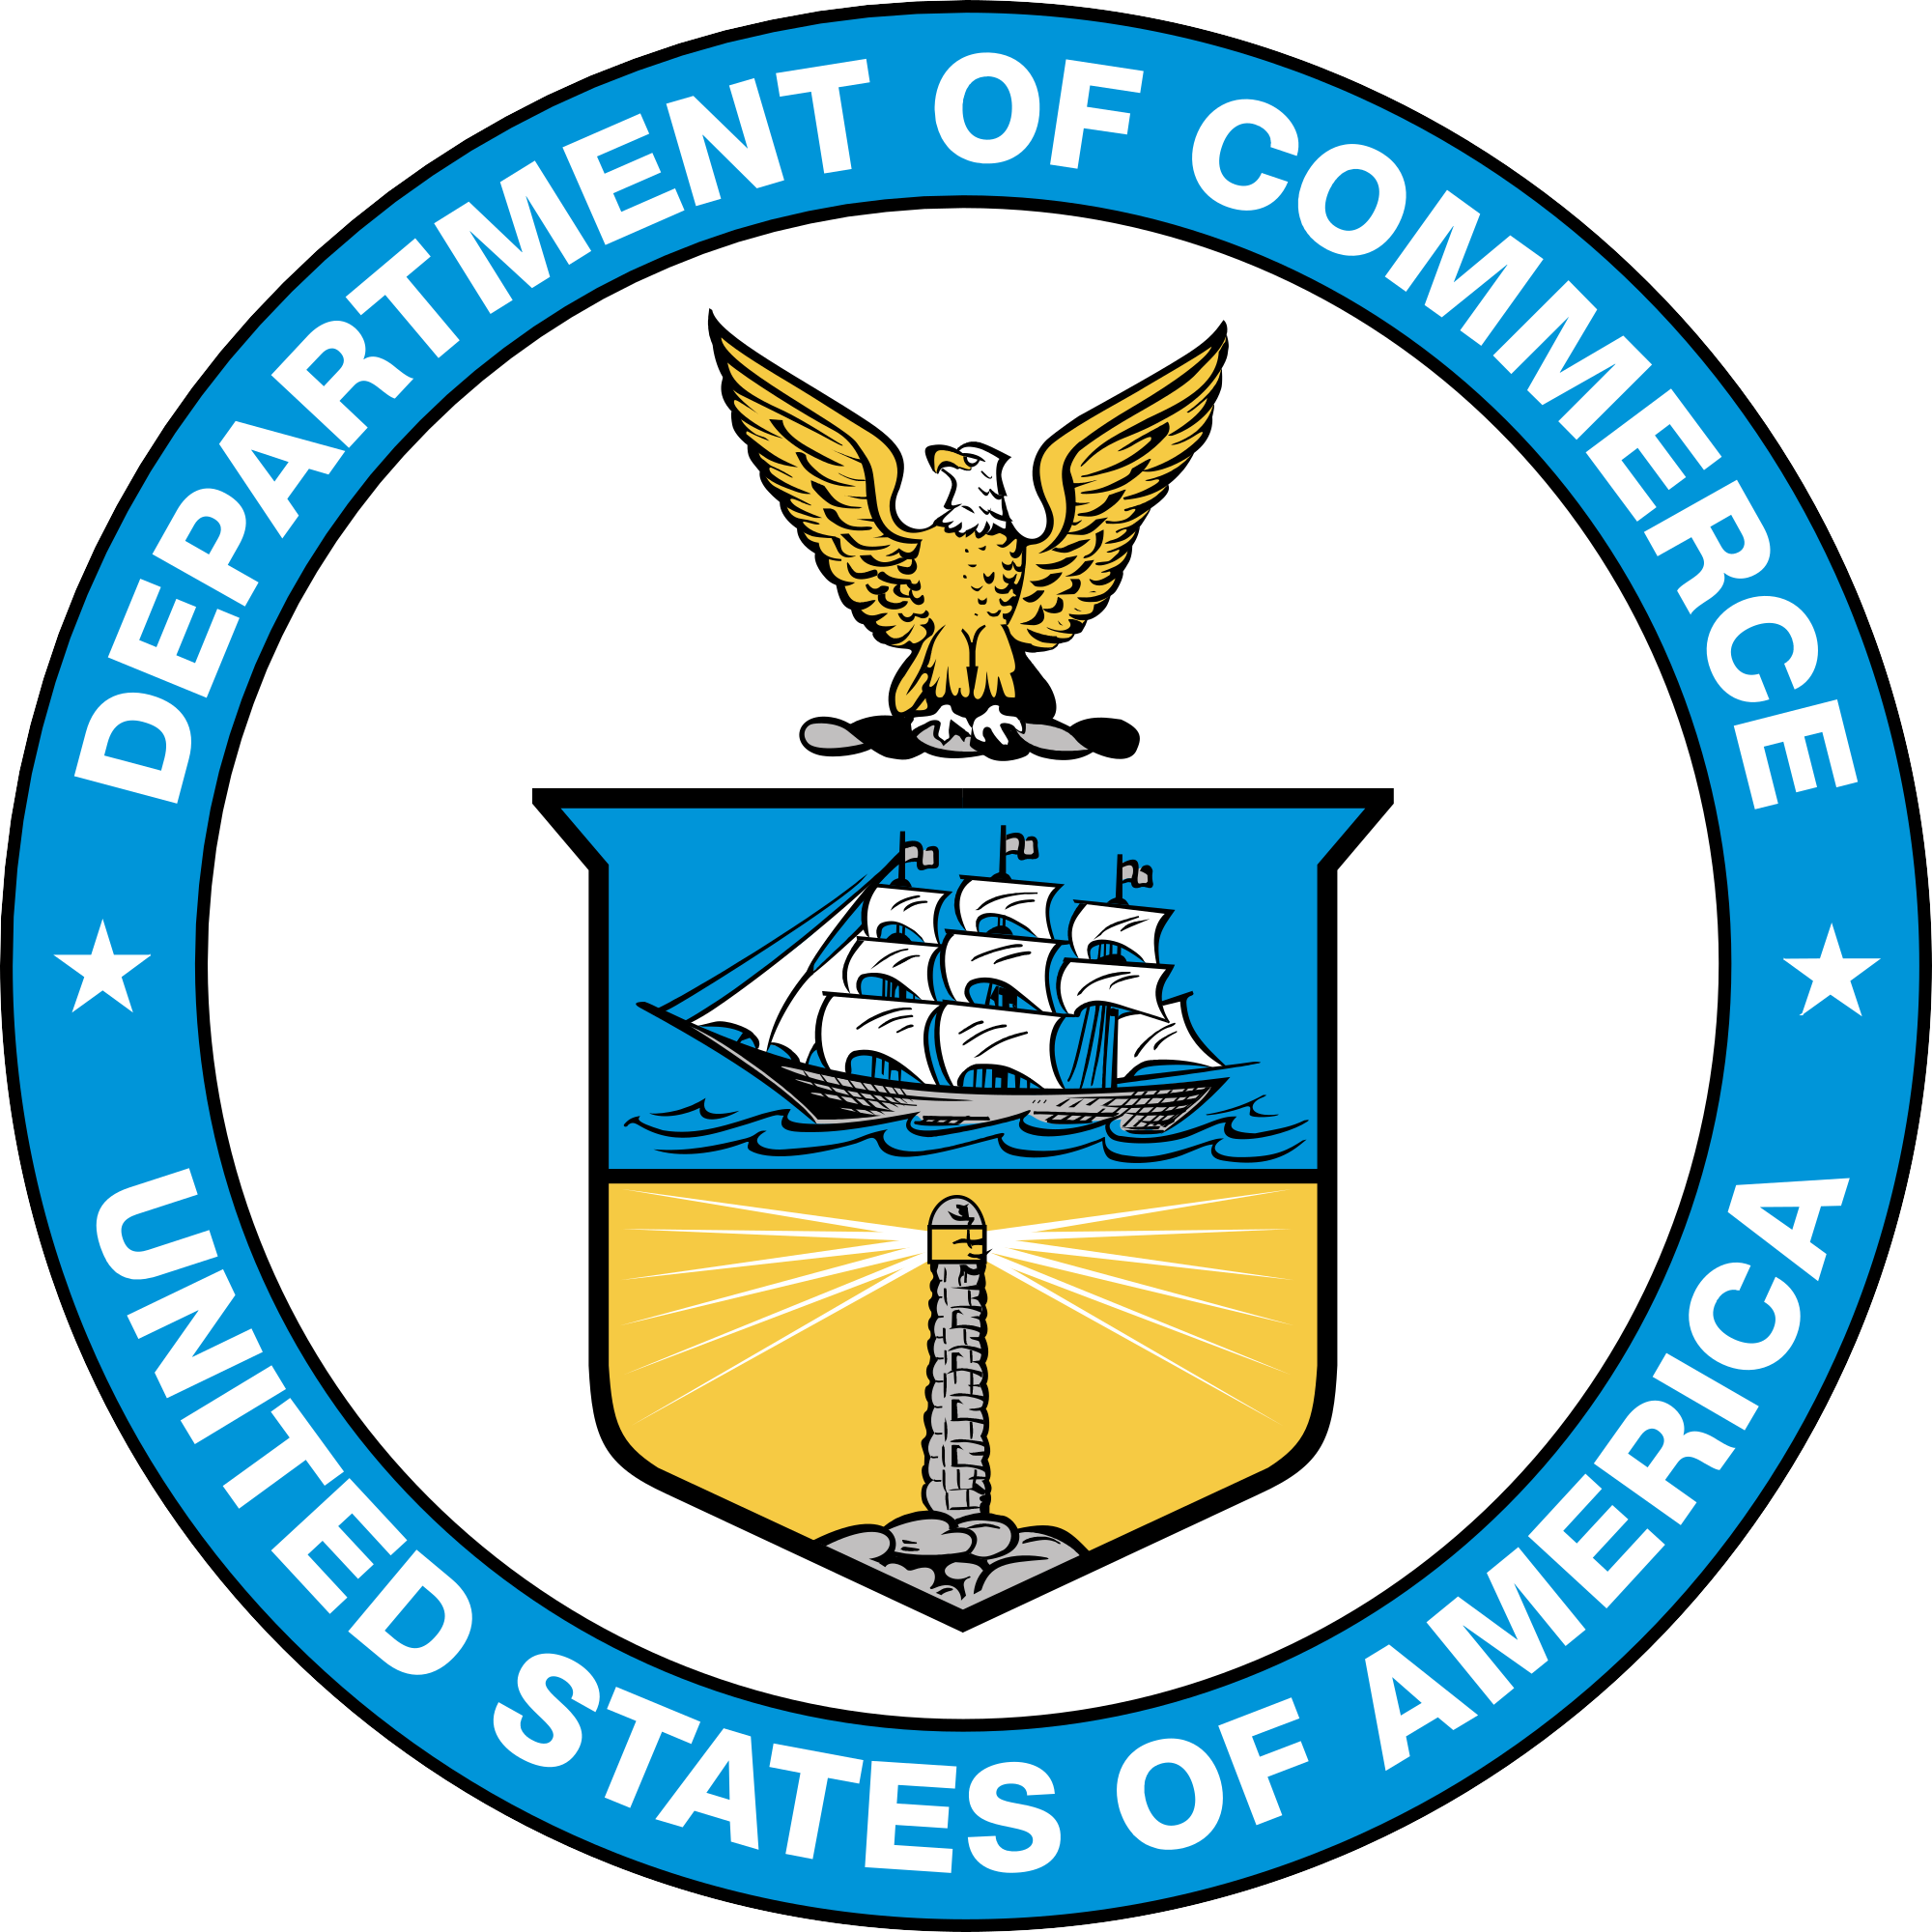 PPE department of commerce logo